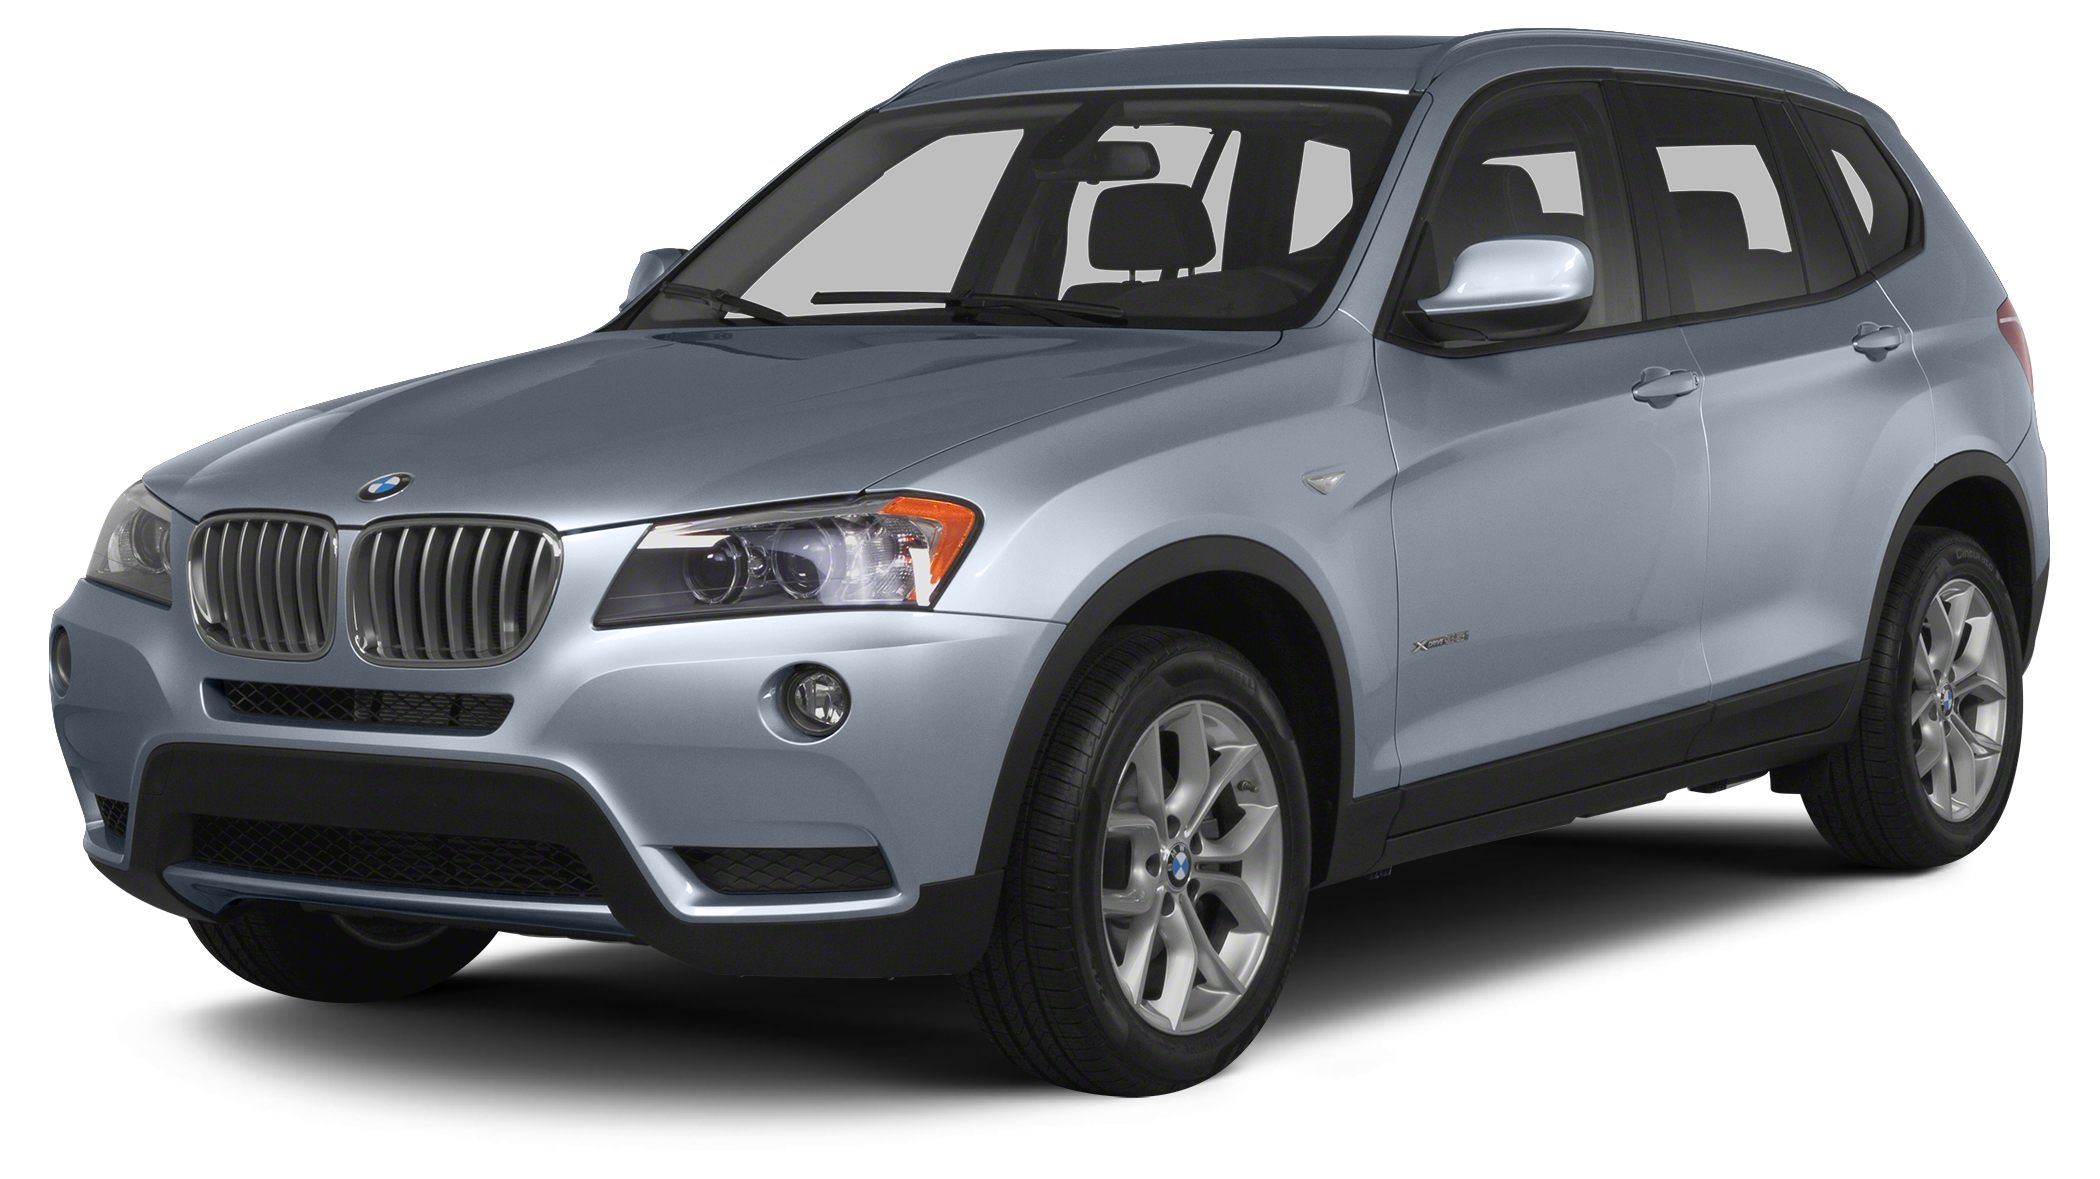 2013 BMW X3 xDrive28i ONE OWNER LOCAL TRADE WITH CLEAN HISTORY SAVE THOUSANDS AND YOU CAN OWN